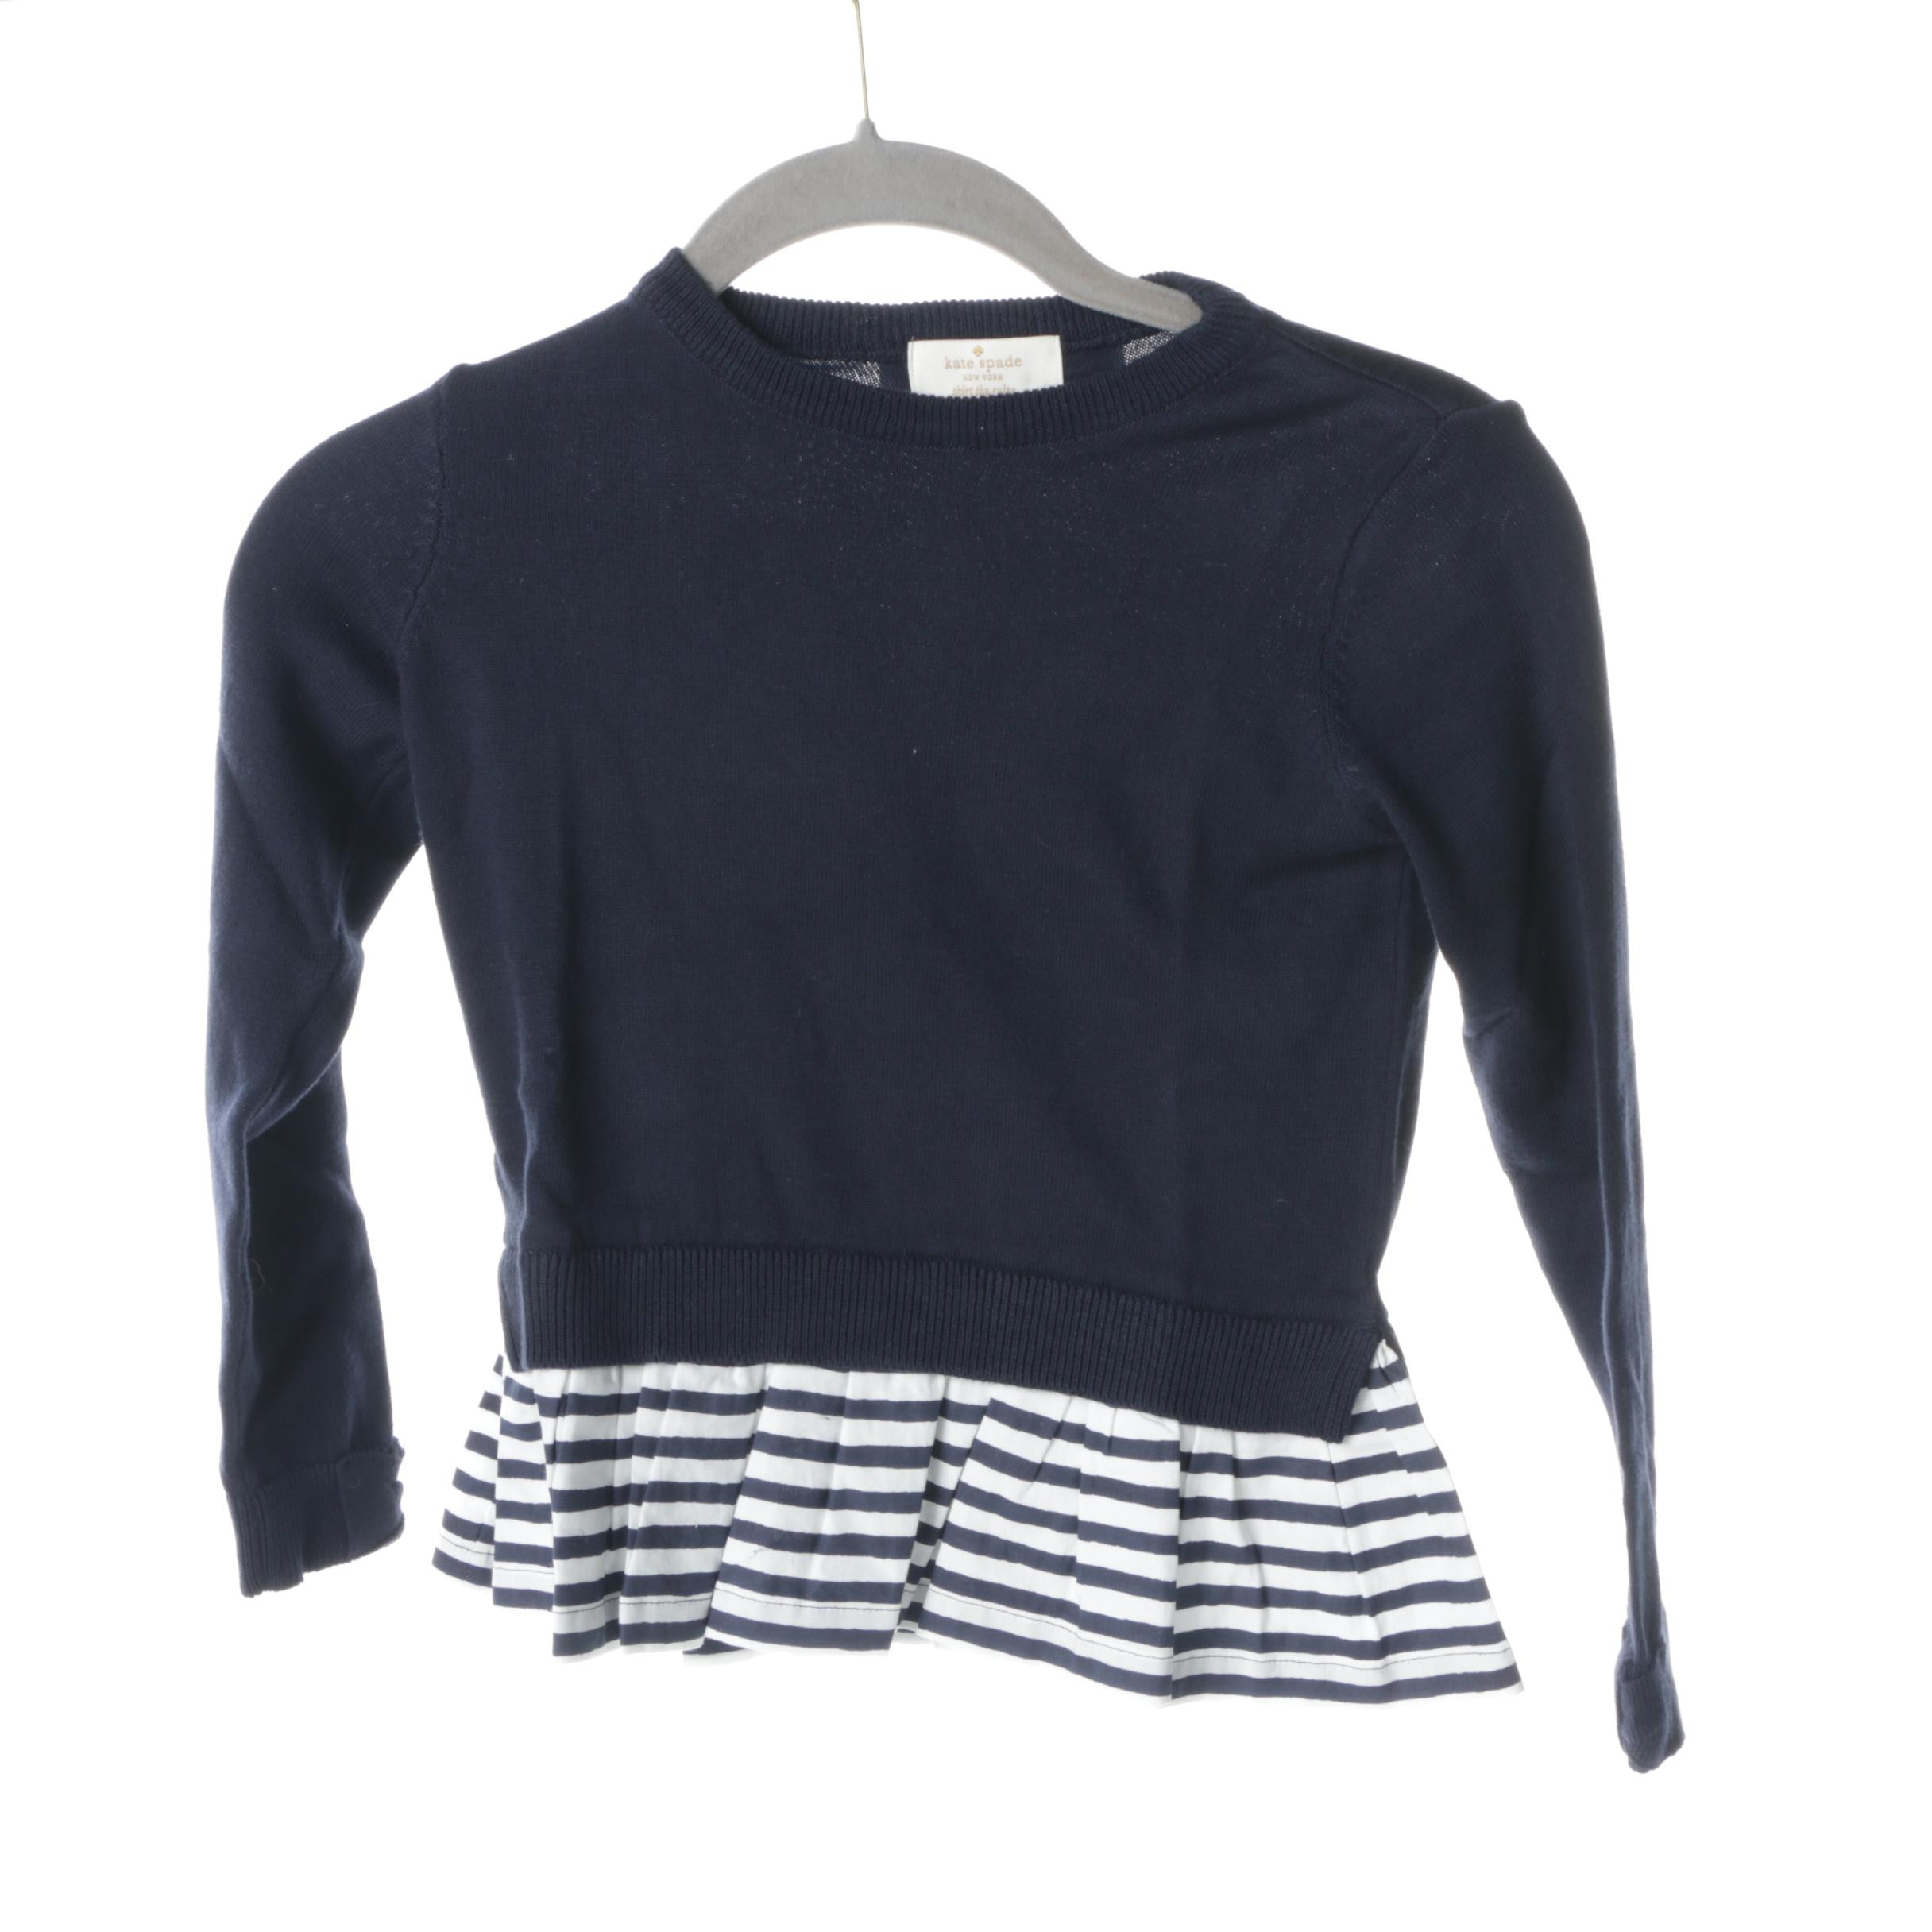 Kate Spade Toddlers' Sweater